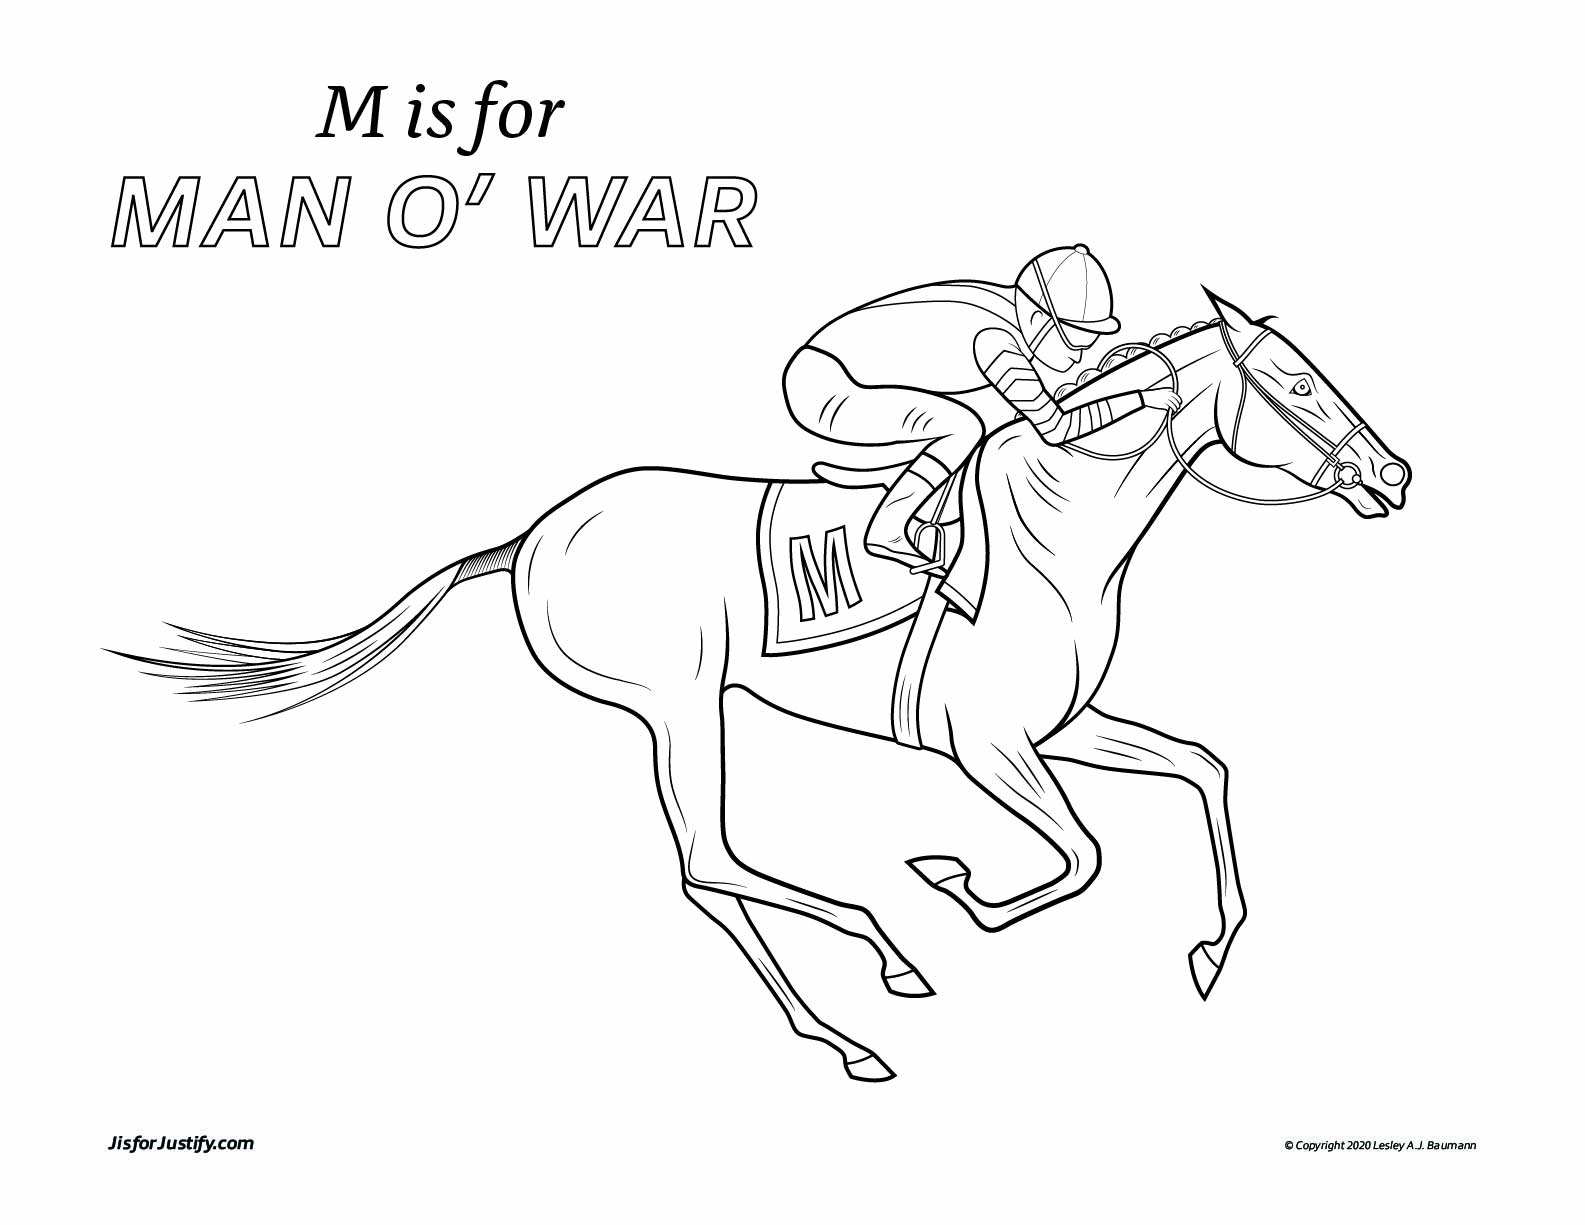 Coloring_Page_Man_o_War